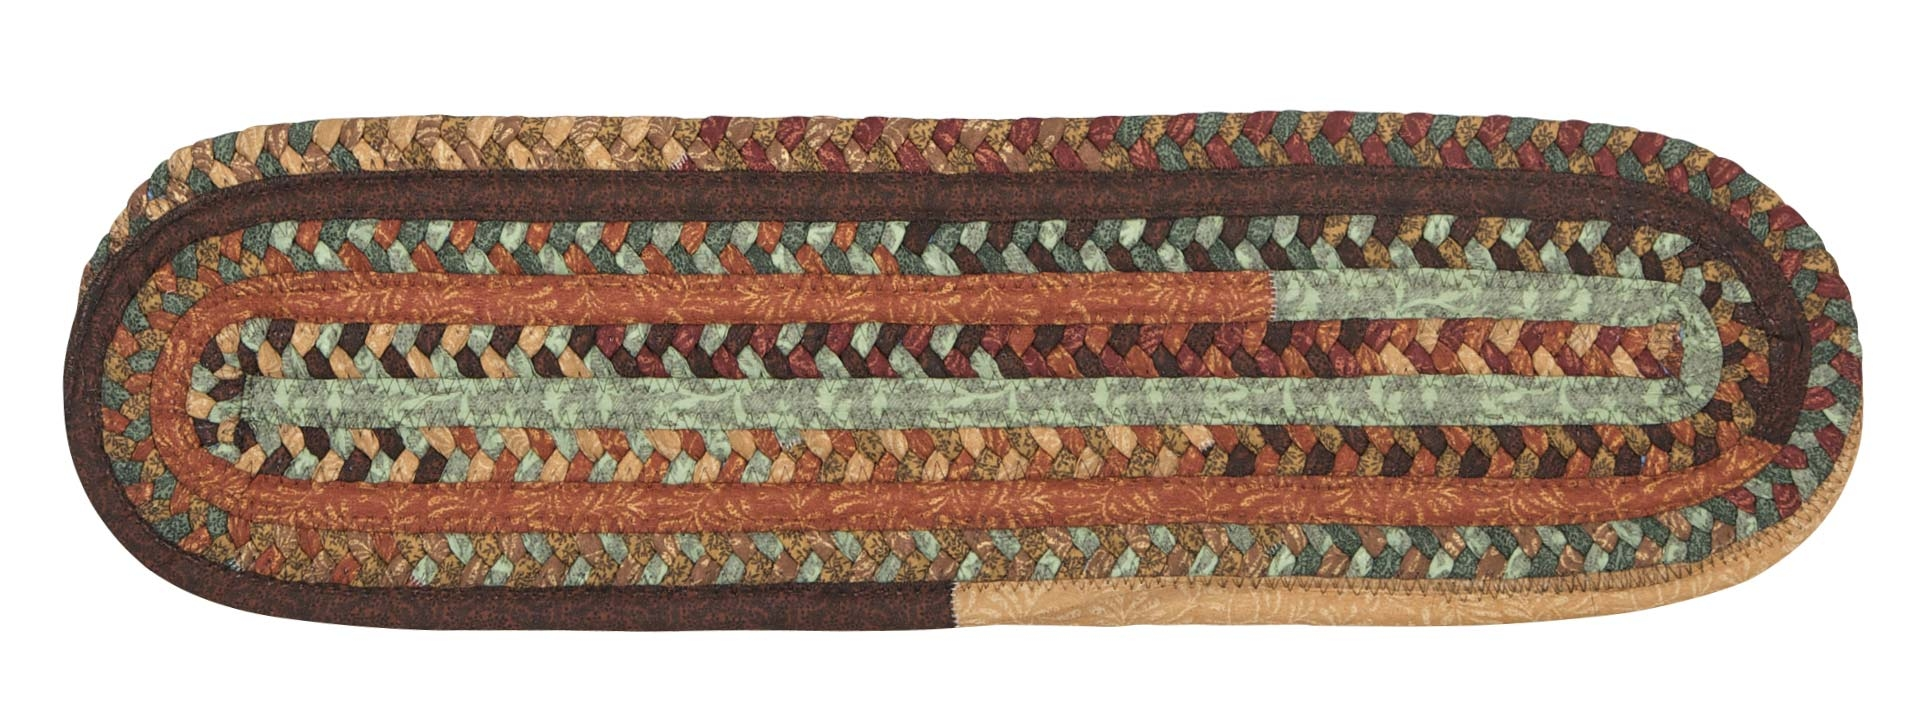 Olivera Stair Treads Colonial Mills Cmi Braided Rugs Outdoor Regarding Stair Treads Braided Rugs (Image 11 of 15)